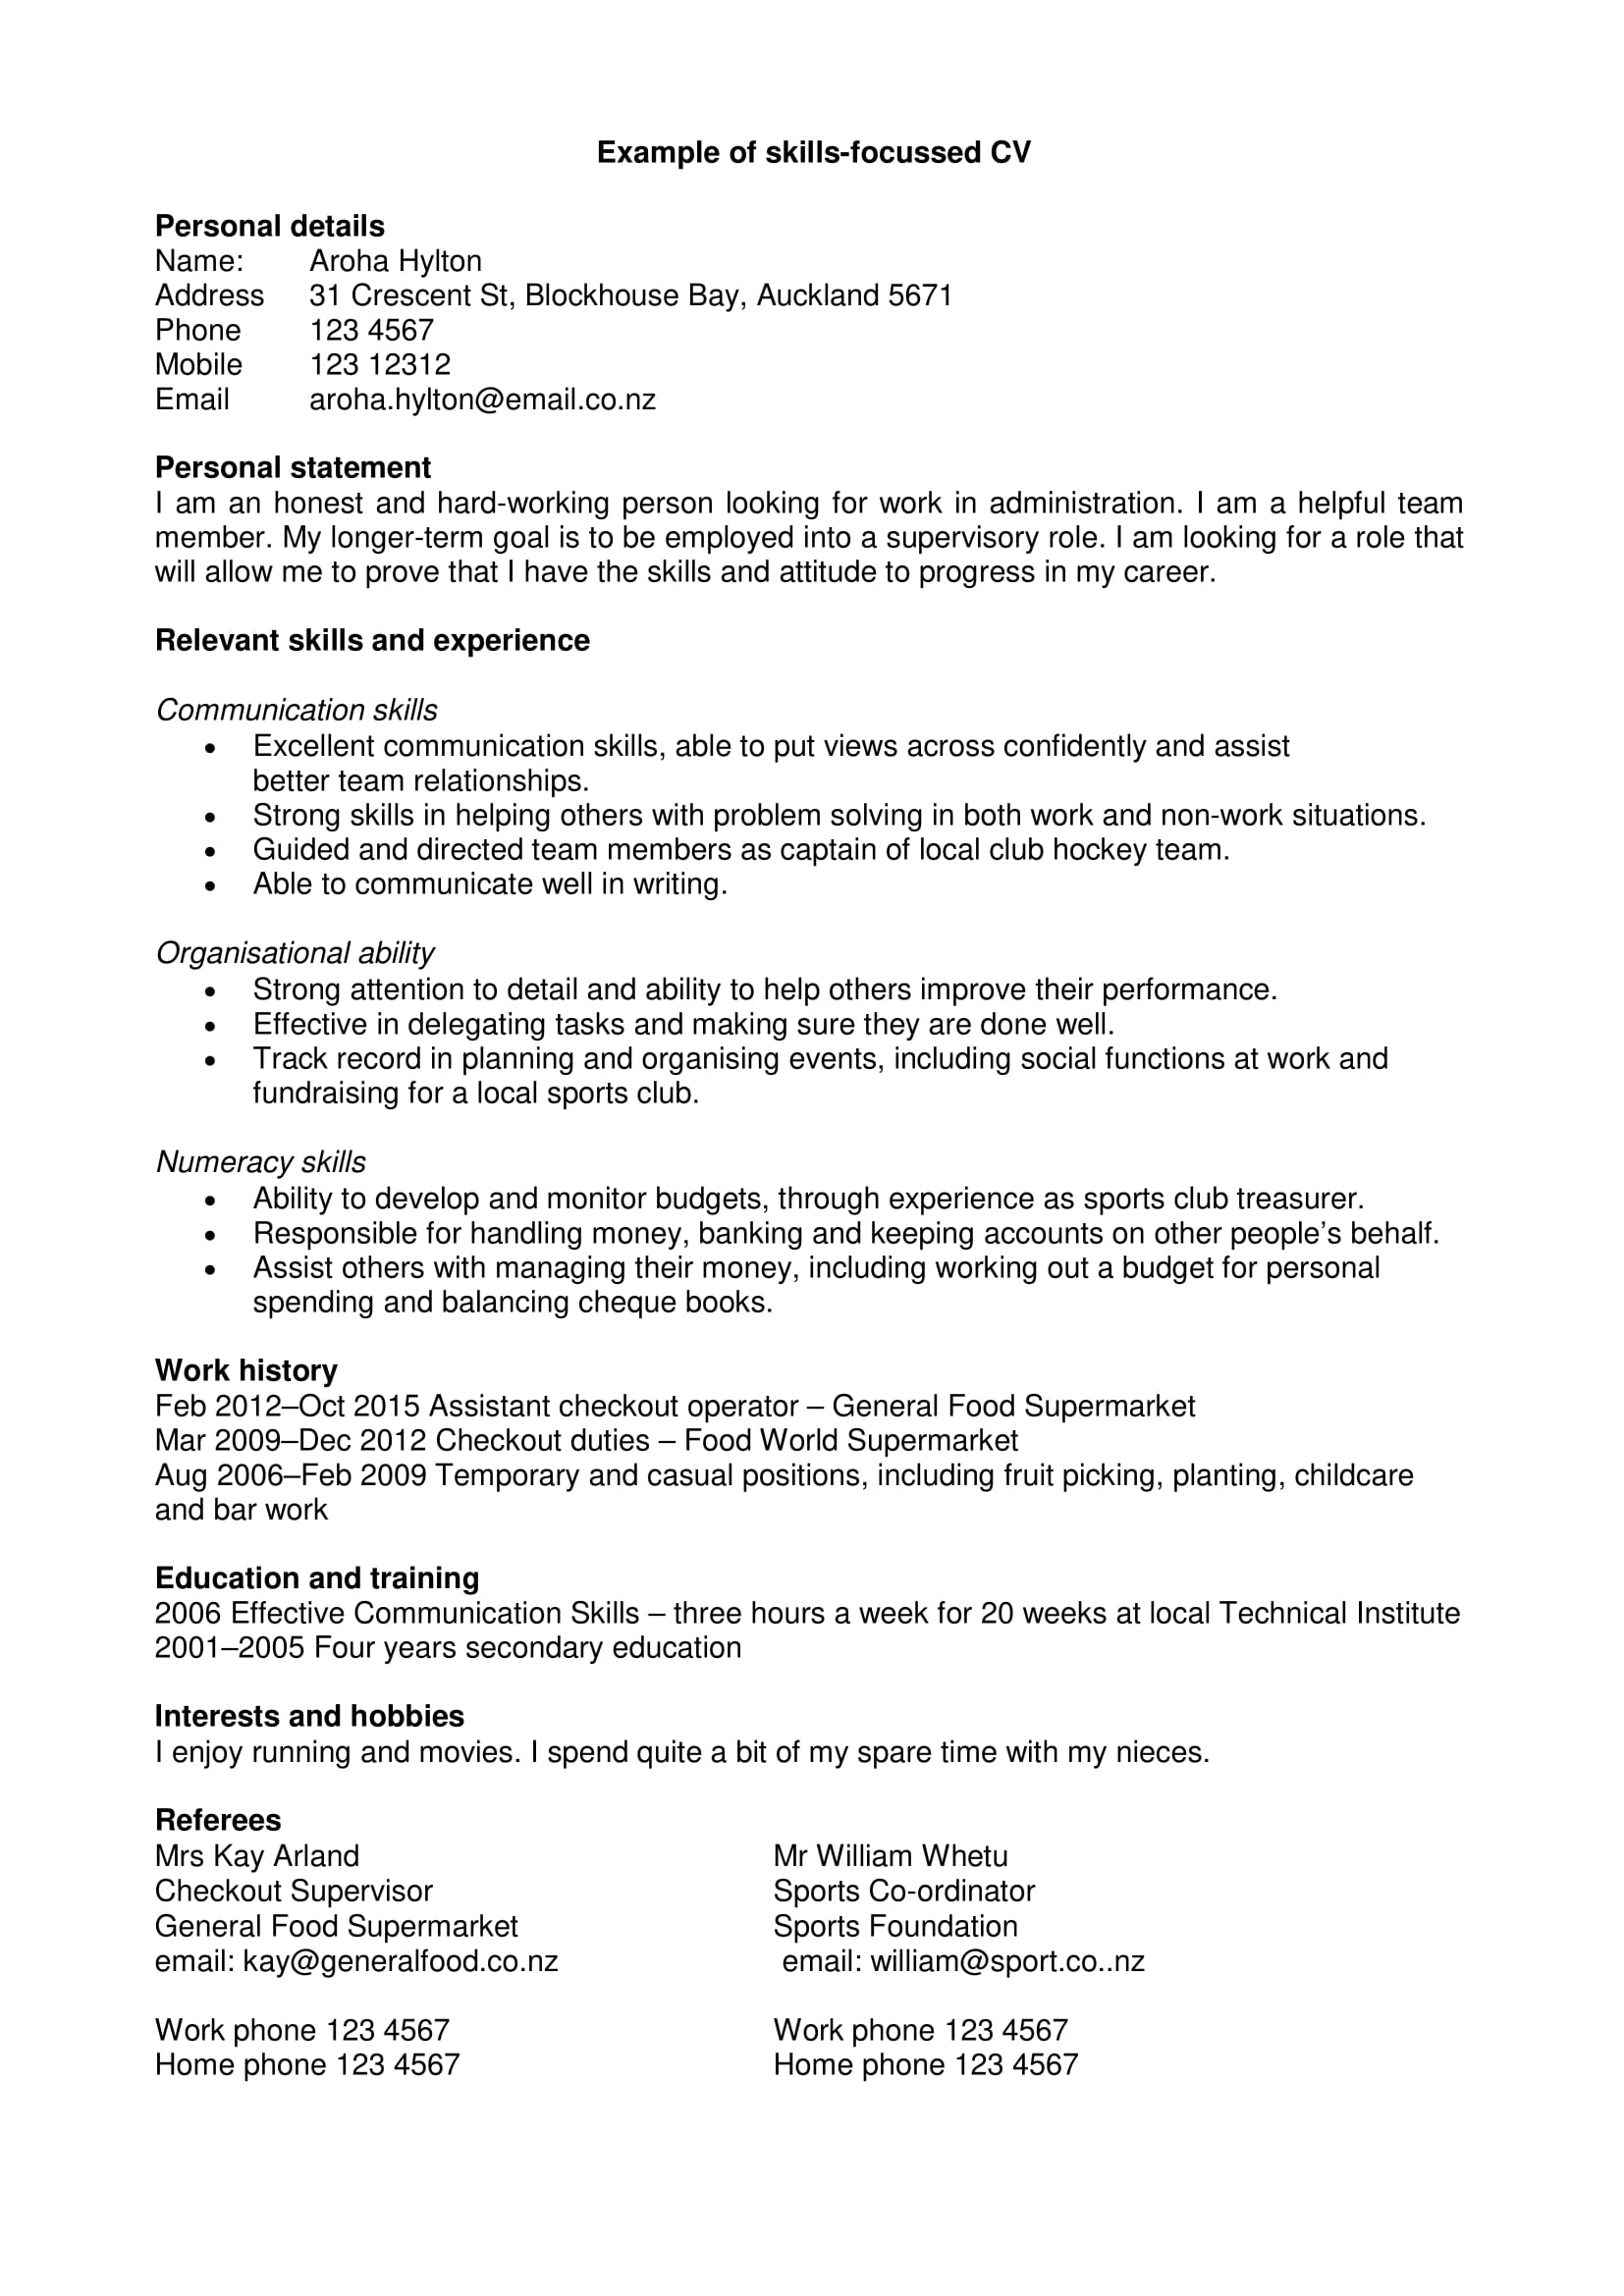 skills focused cv with personal statement example